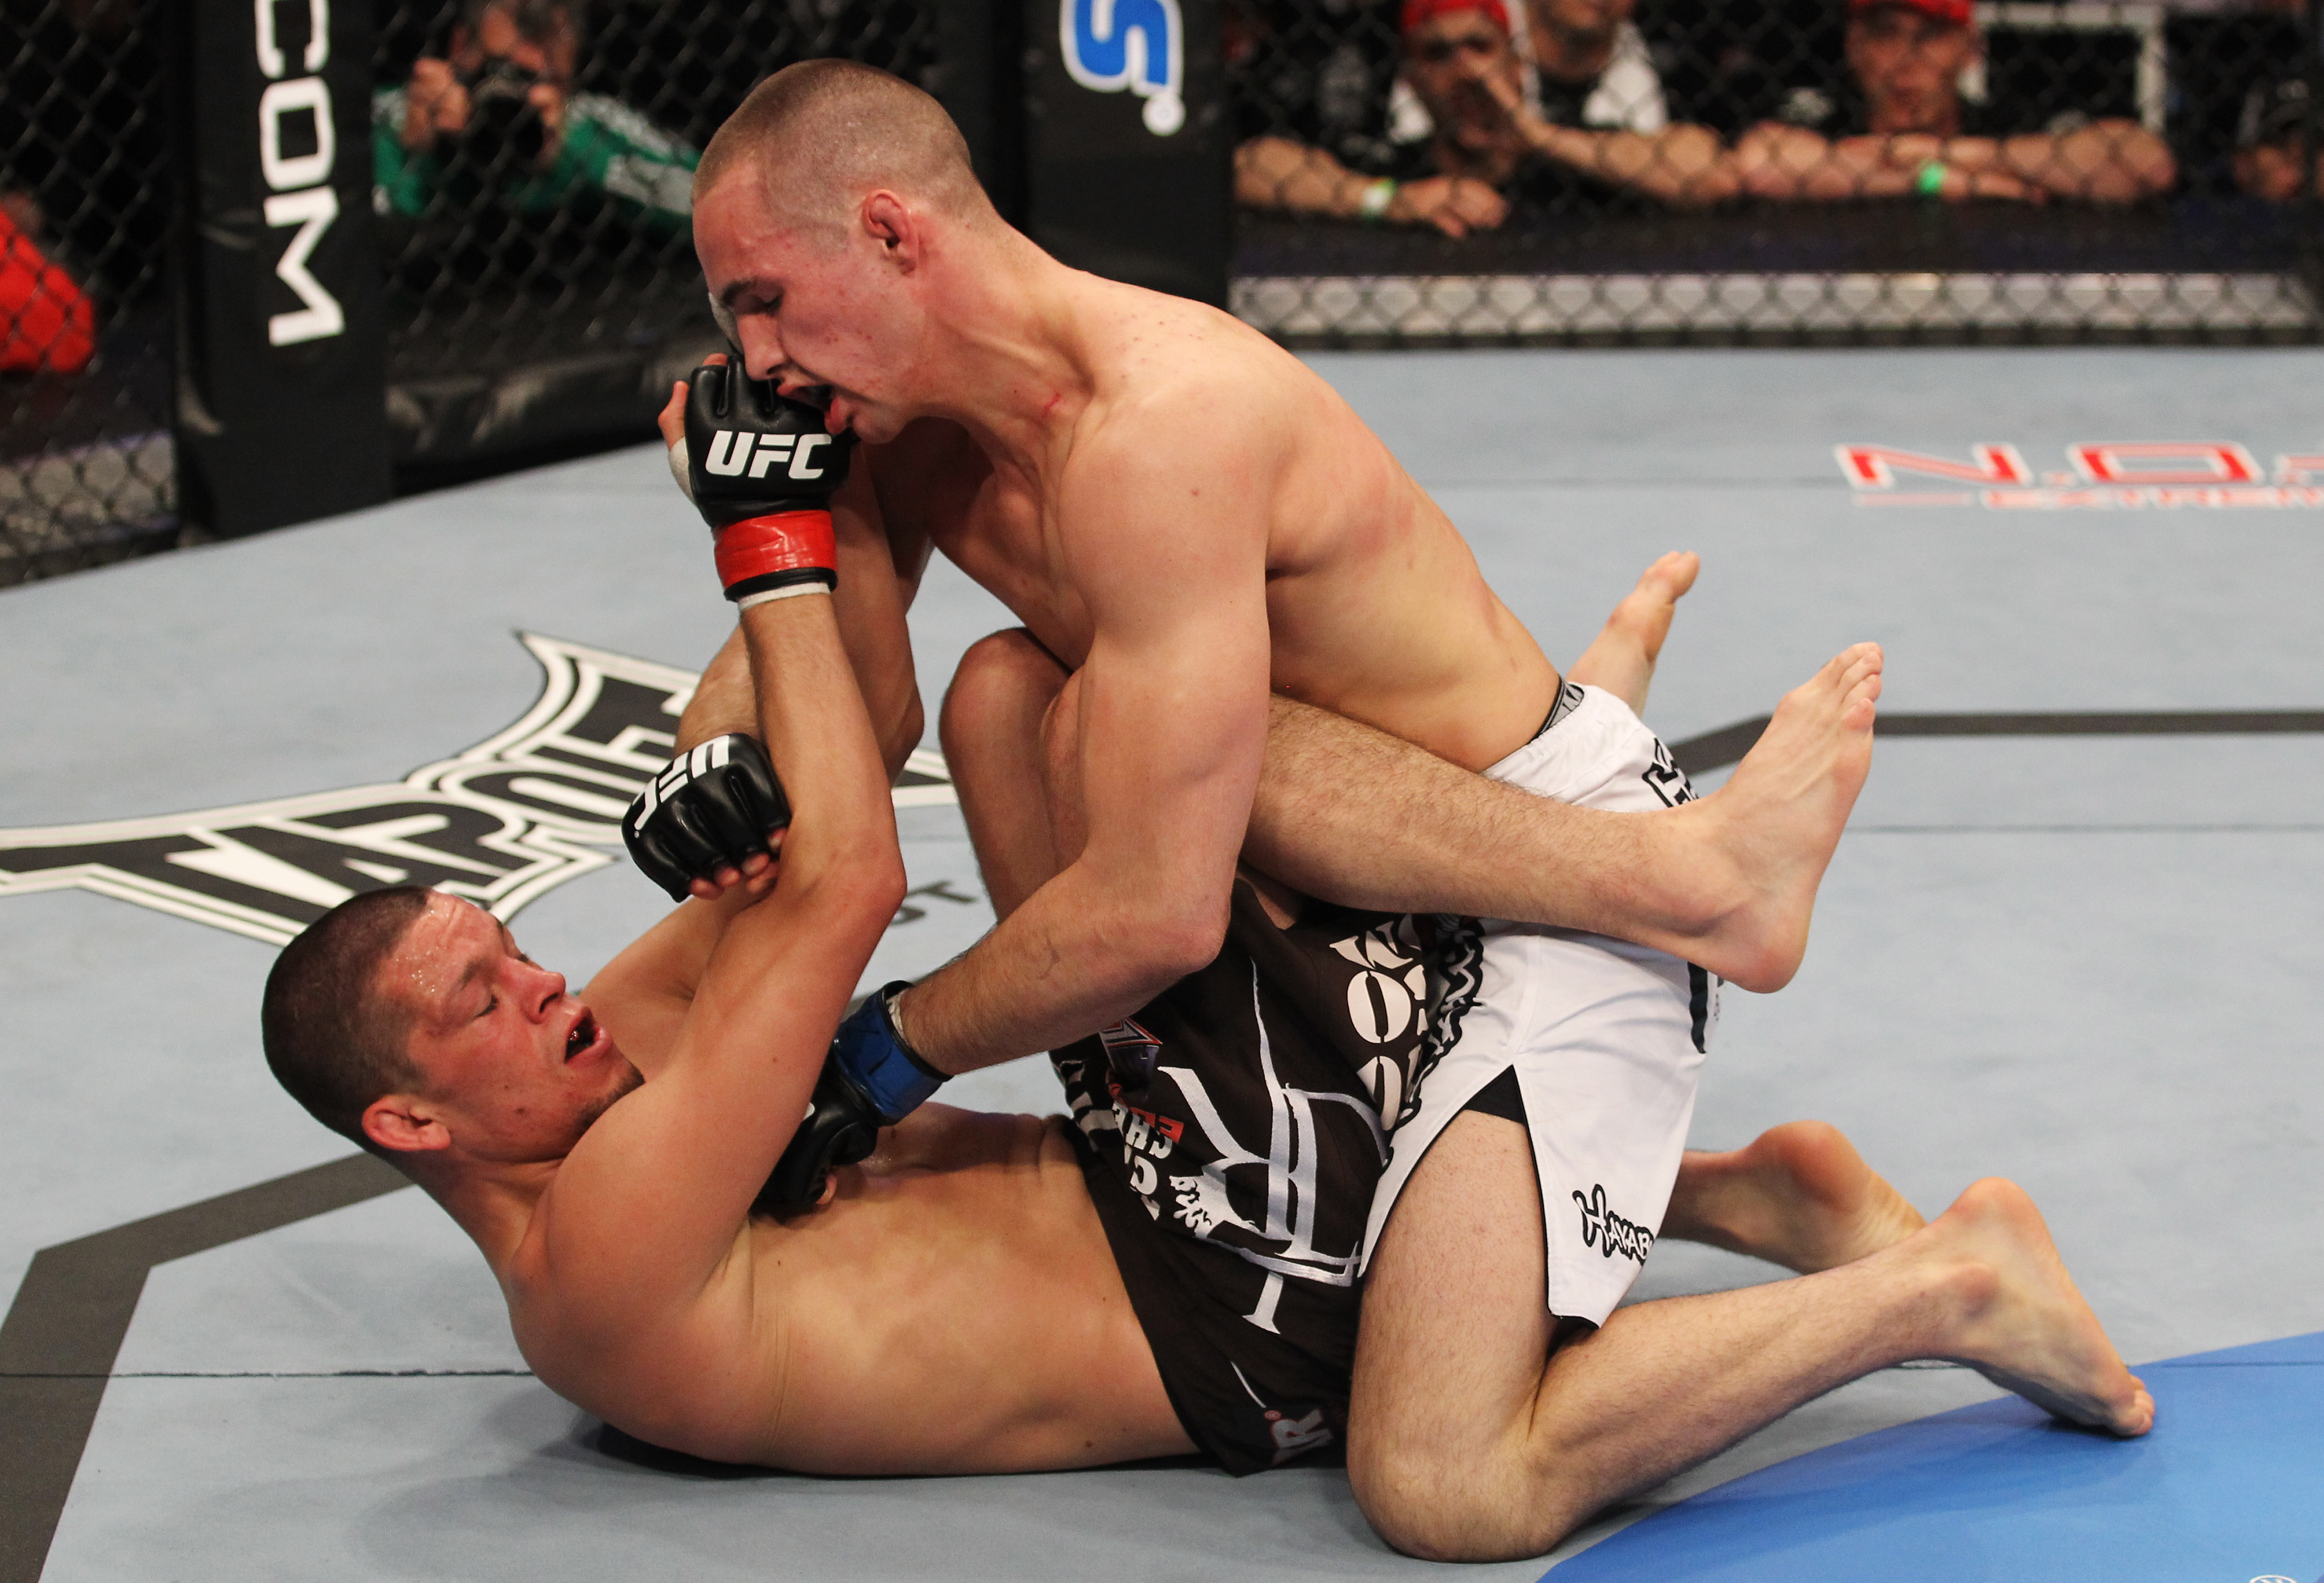 Nate Diaz vs. Rory MacDonald at UFC 129 at the Rogers Centre in Toronto, Ontario